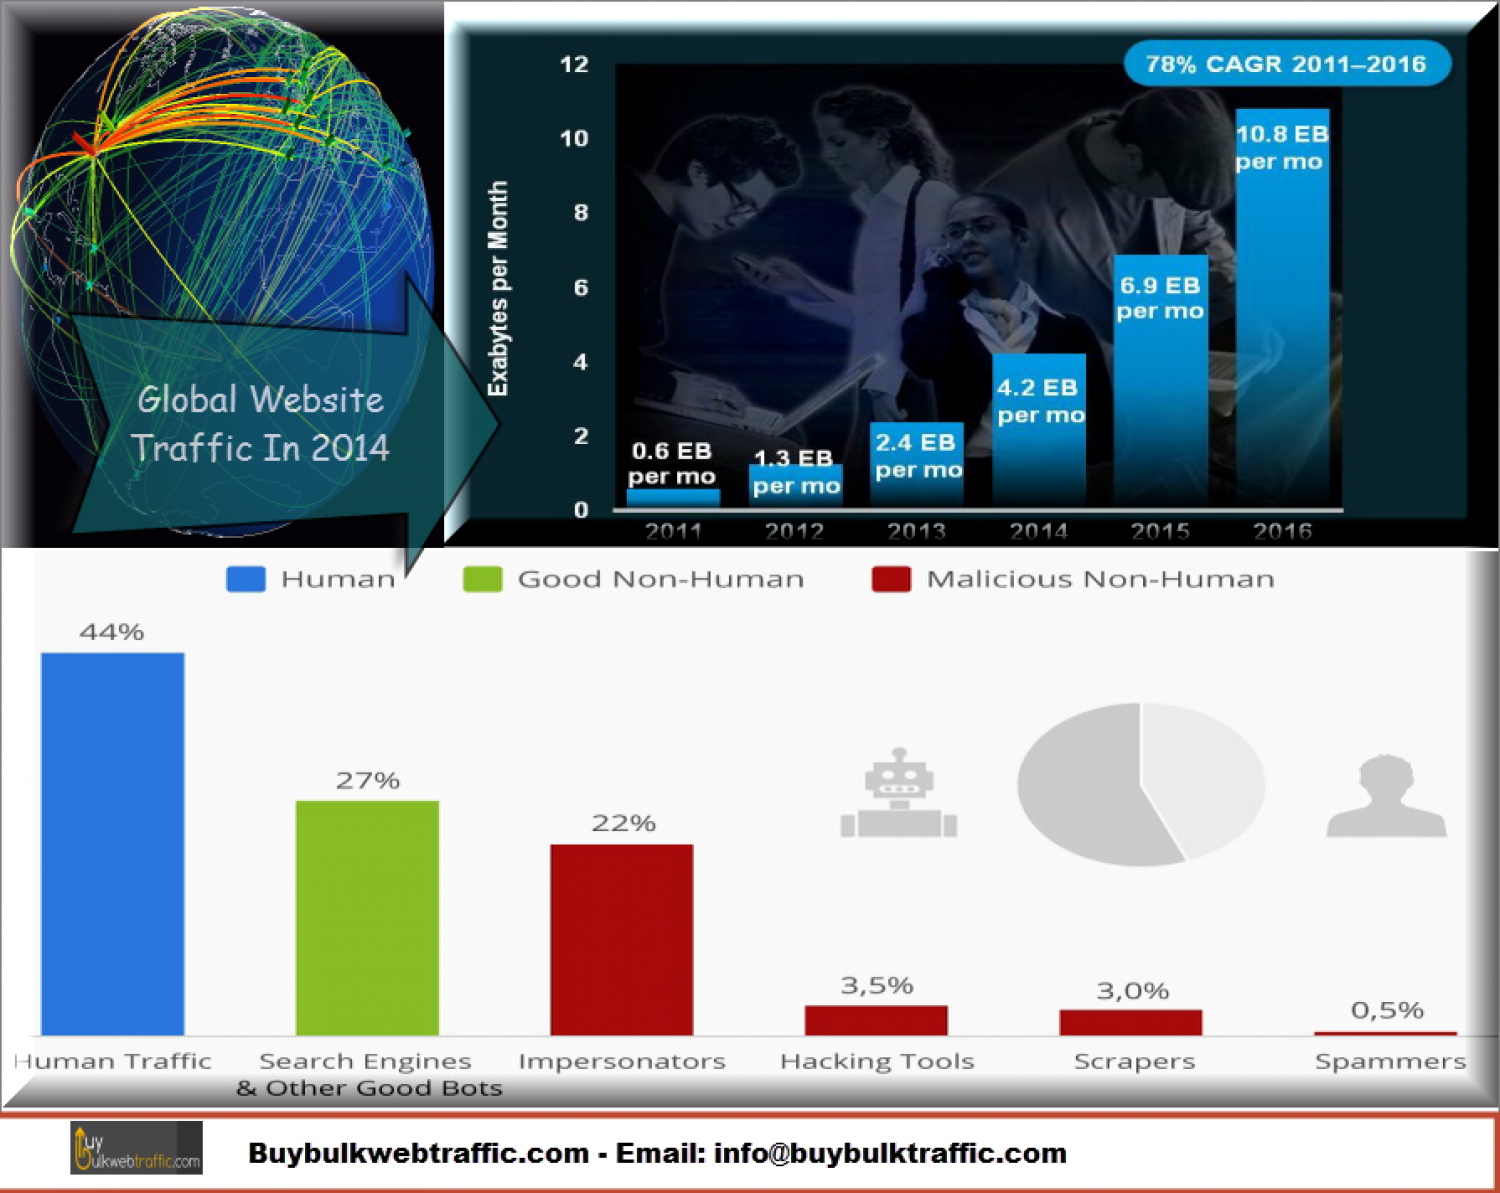 Global Webtraffic in the year 2014 Infographic